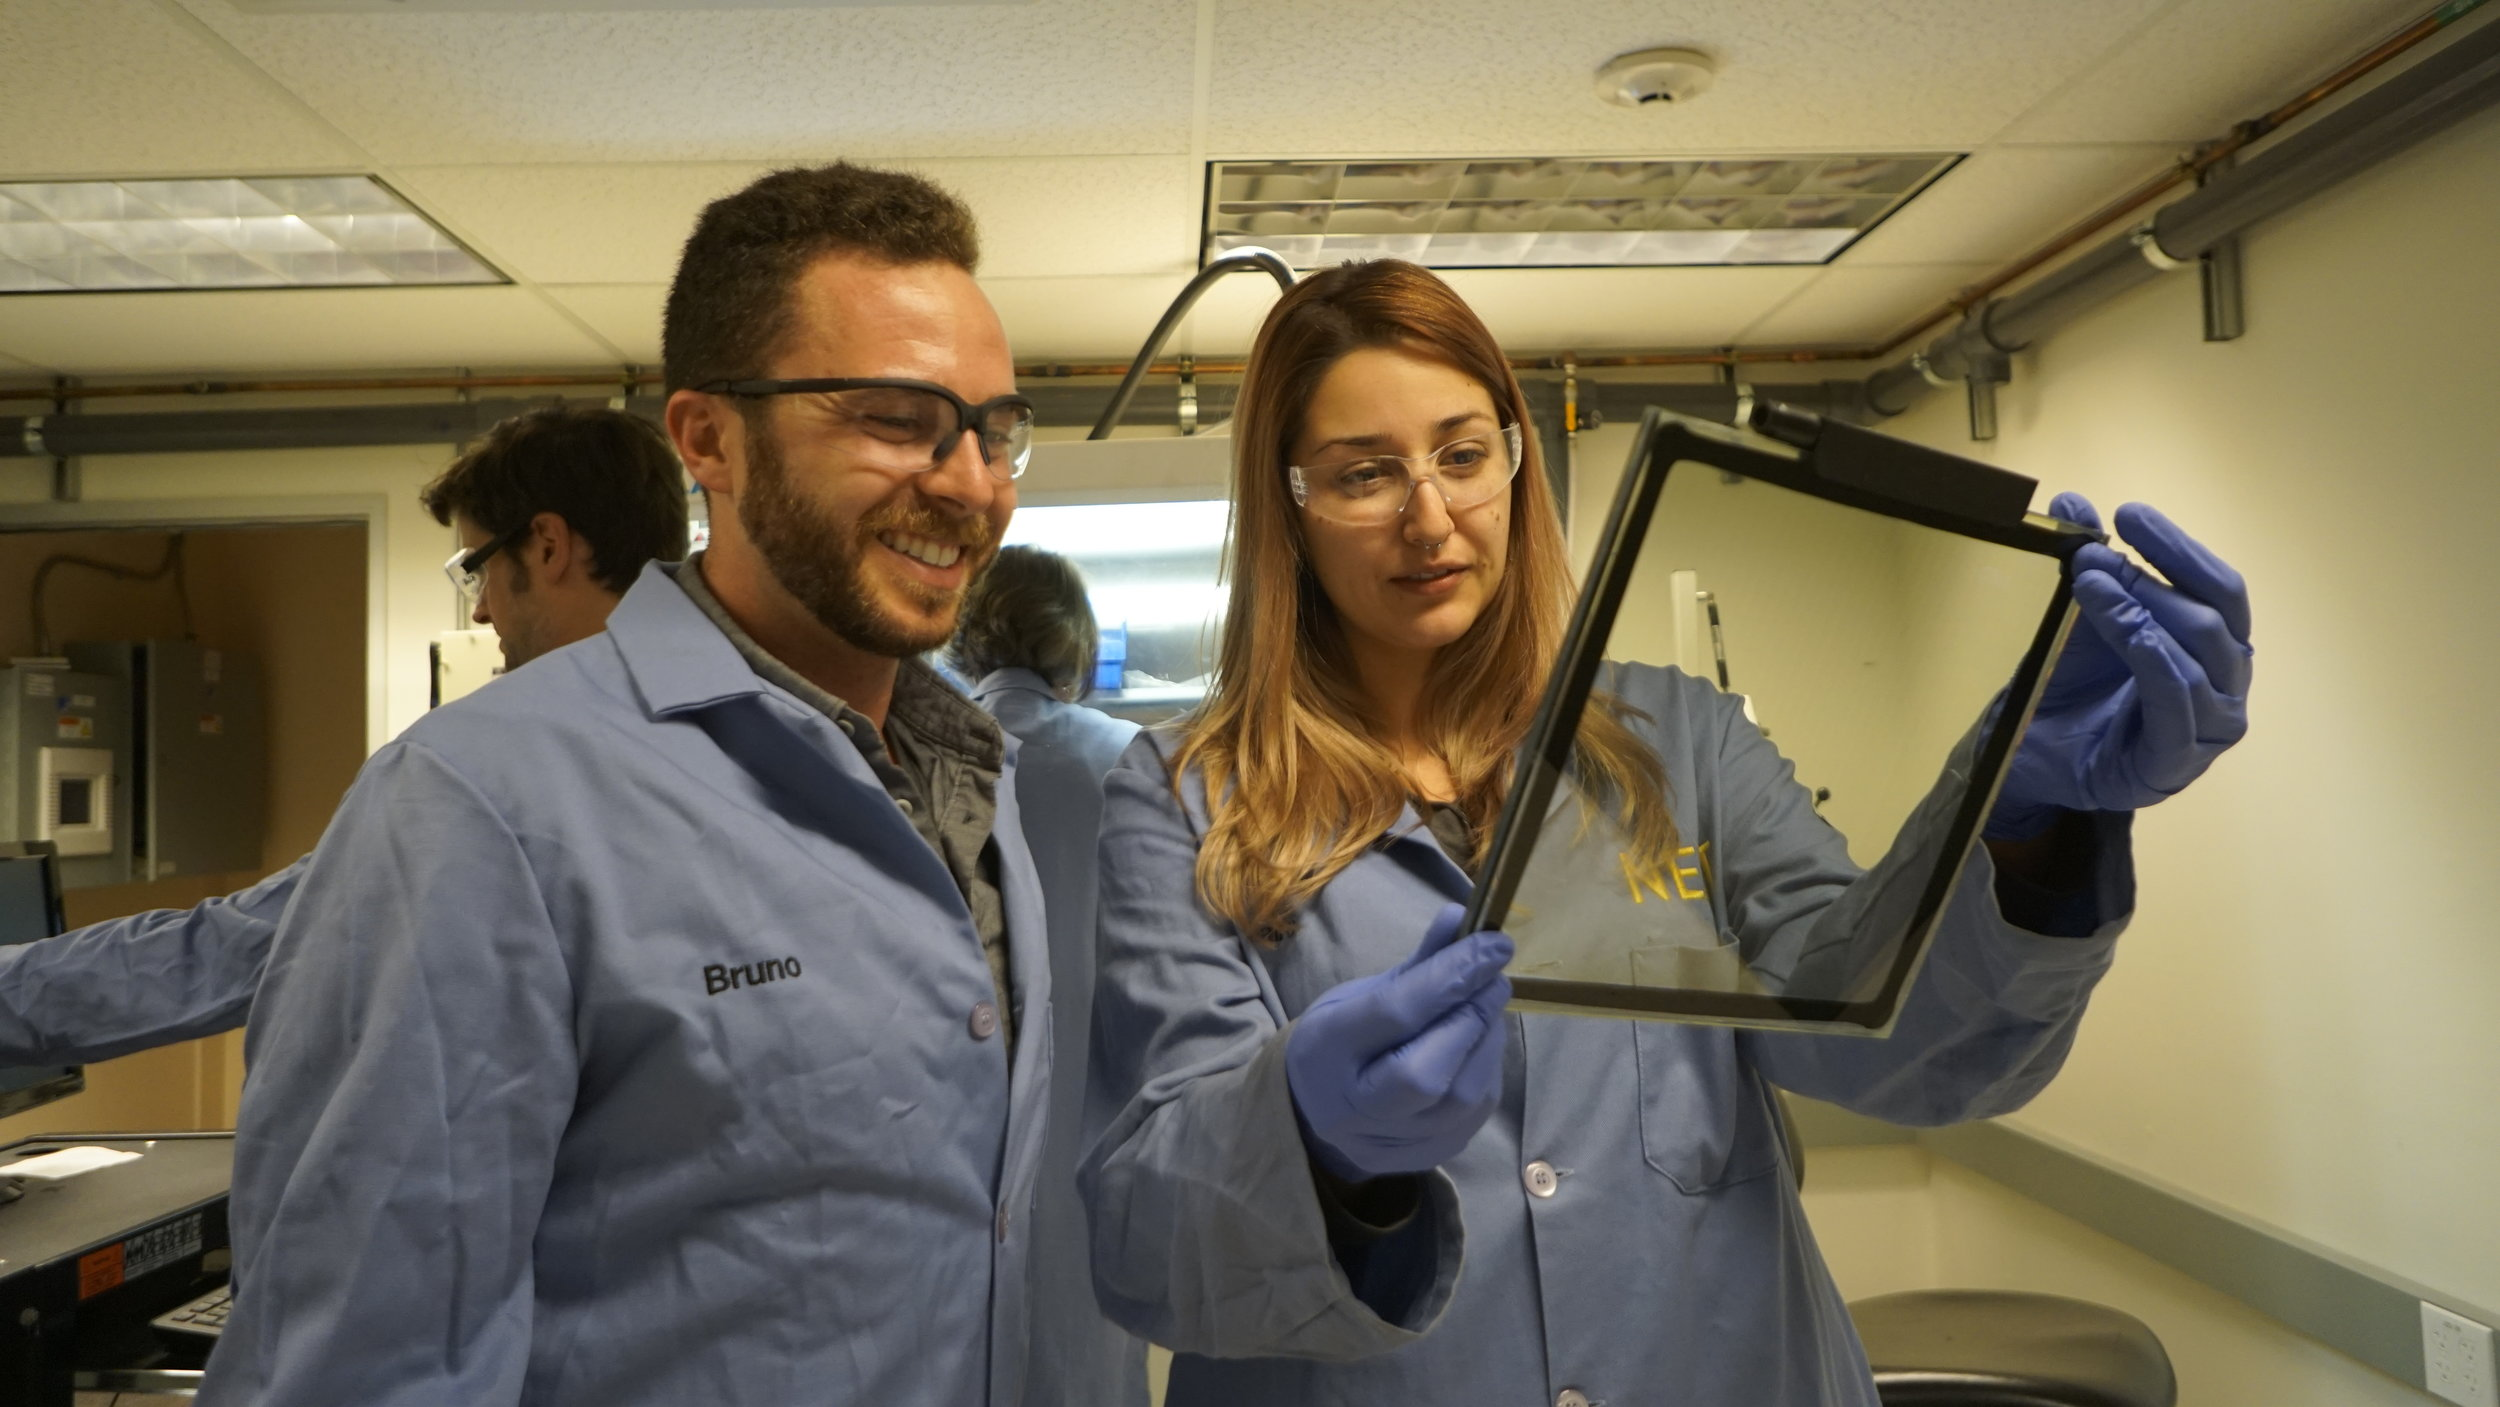 NEXT's Engineers assess a functional prototype in its Santa Barbara, CA lab.